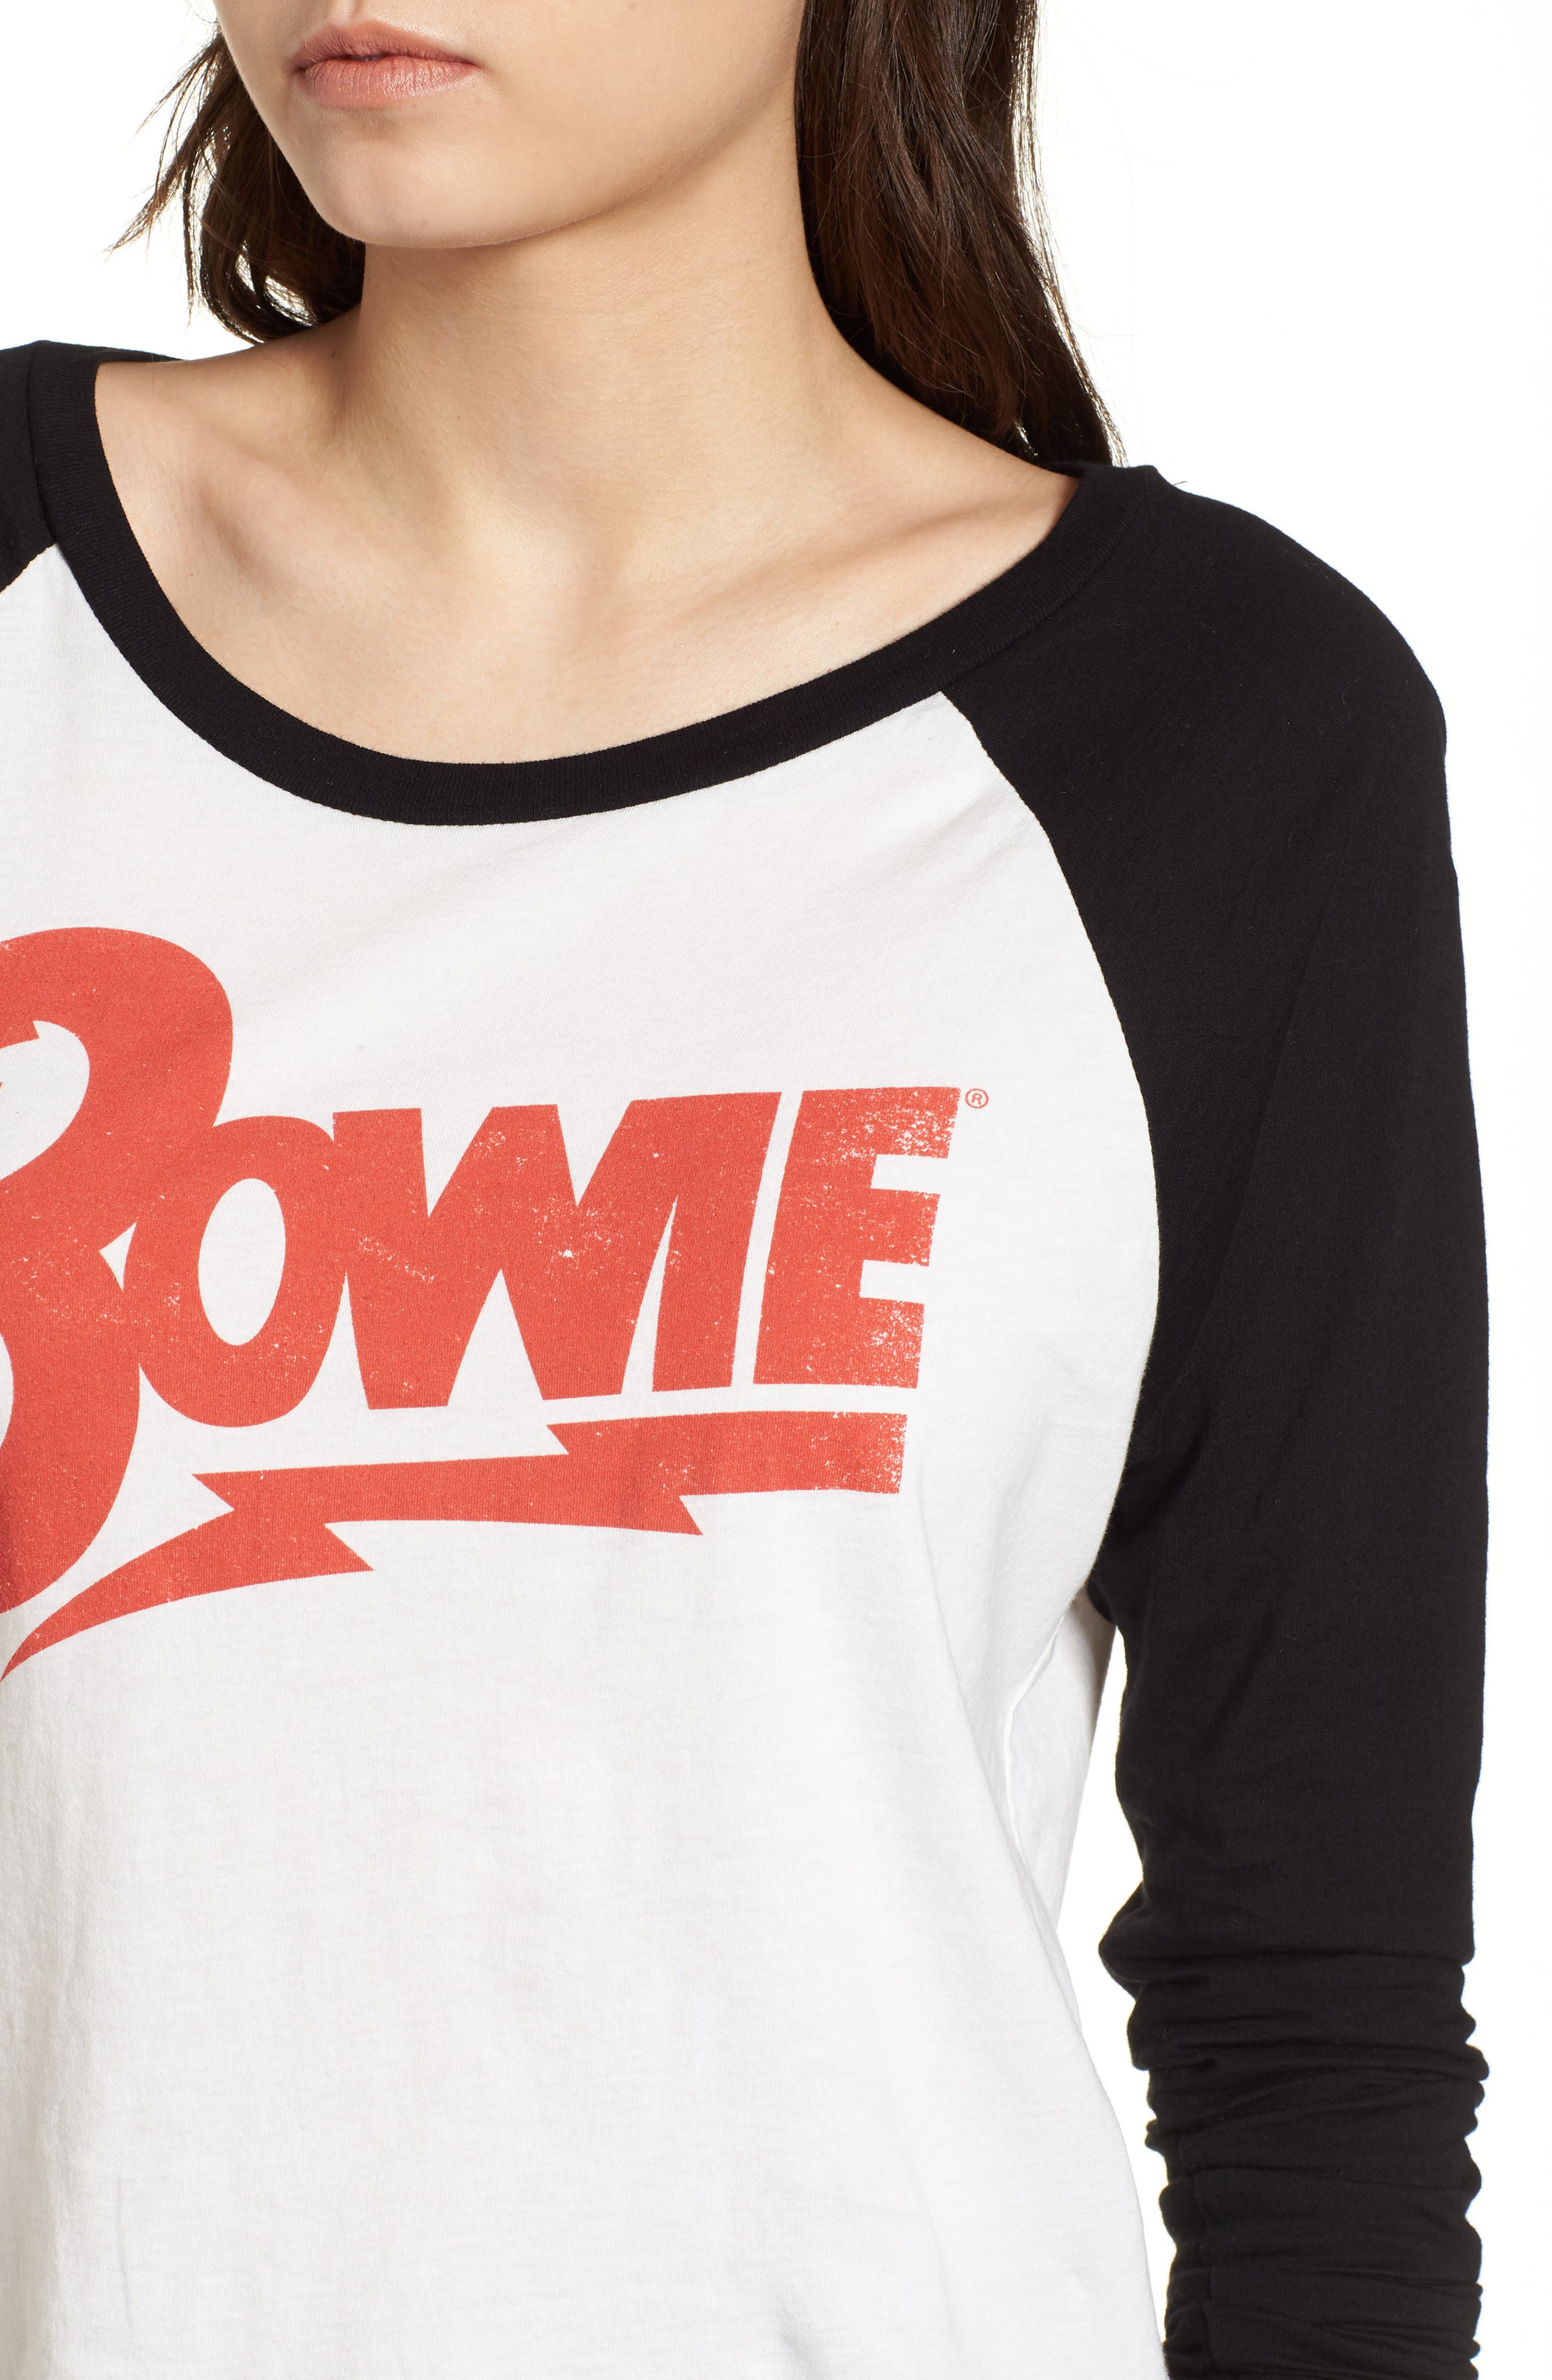 David Bowie Raglan Tee,                             Alternate thumbnail 4, color,